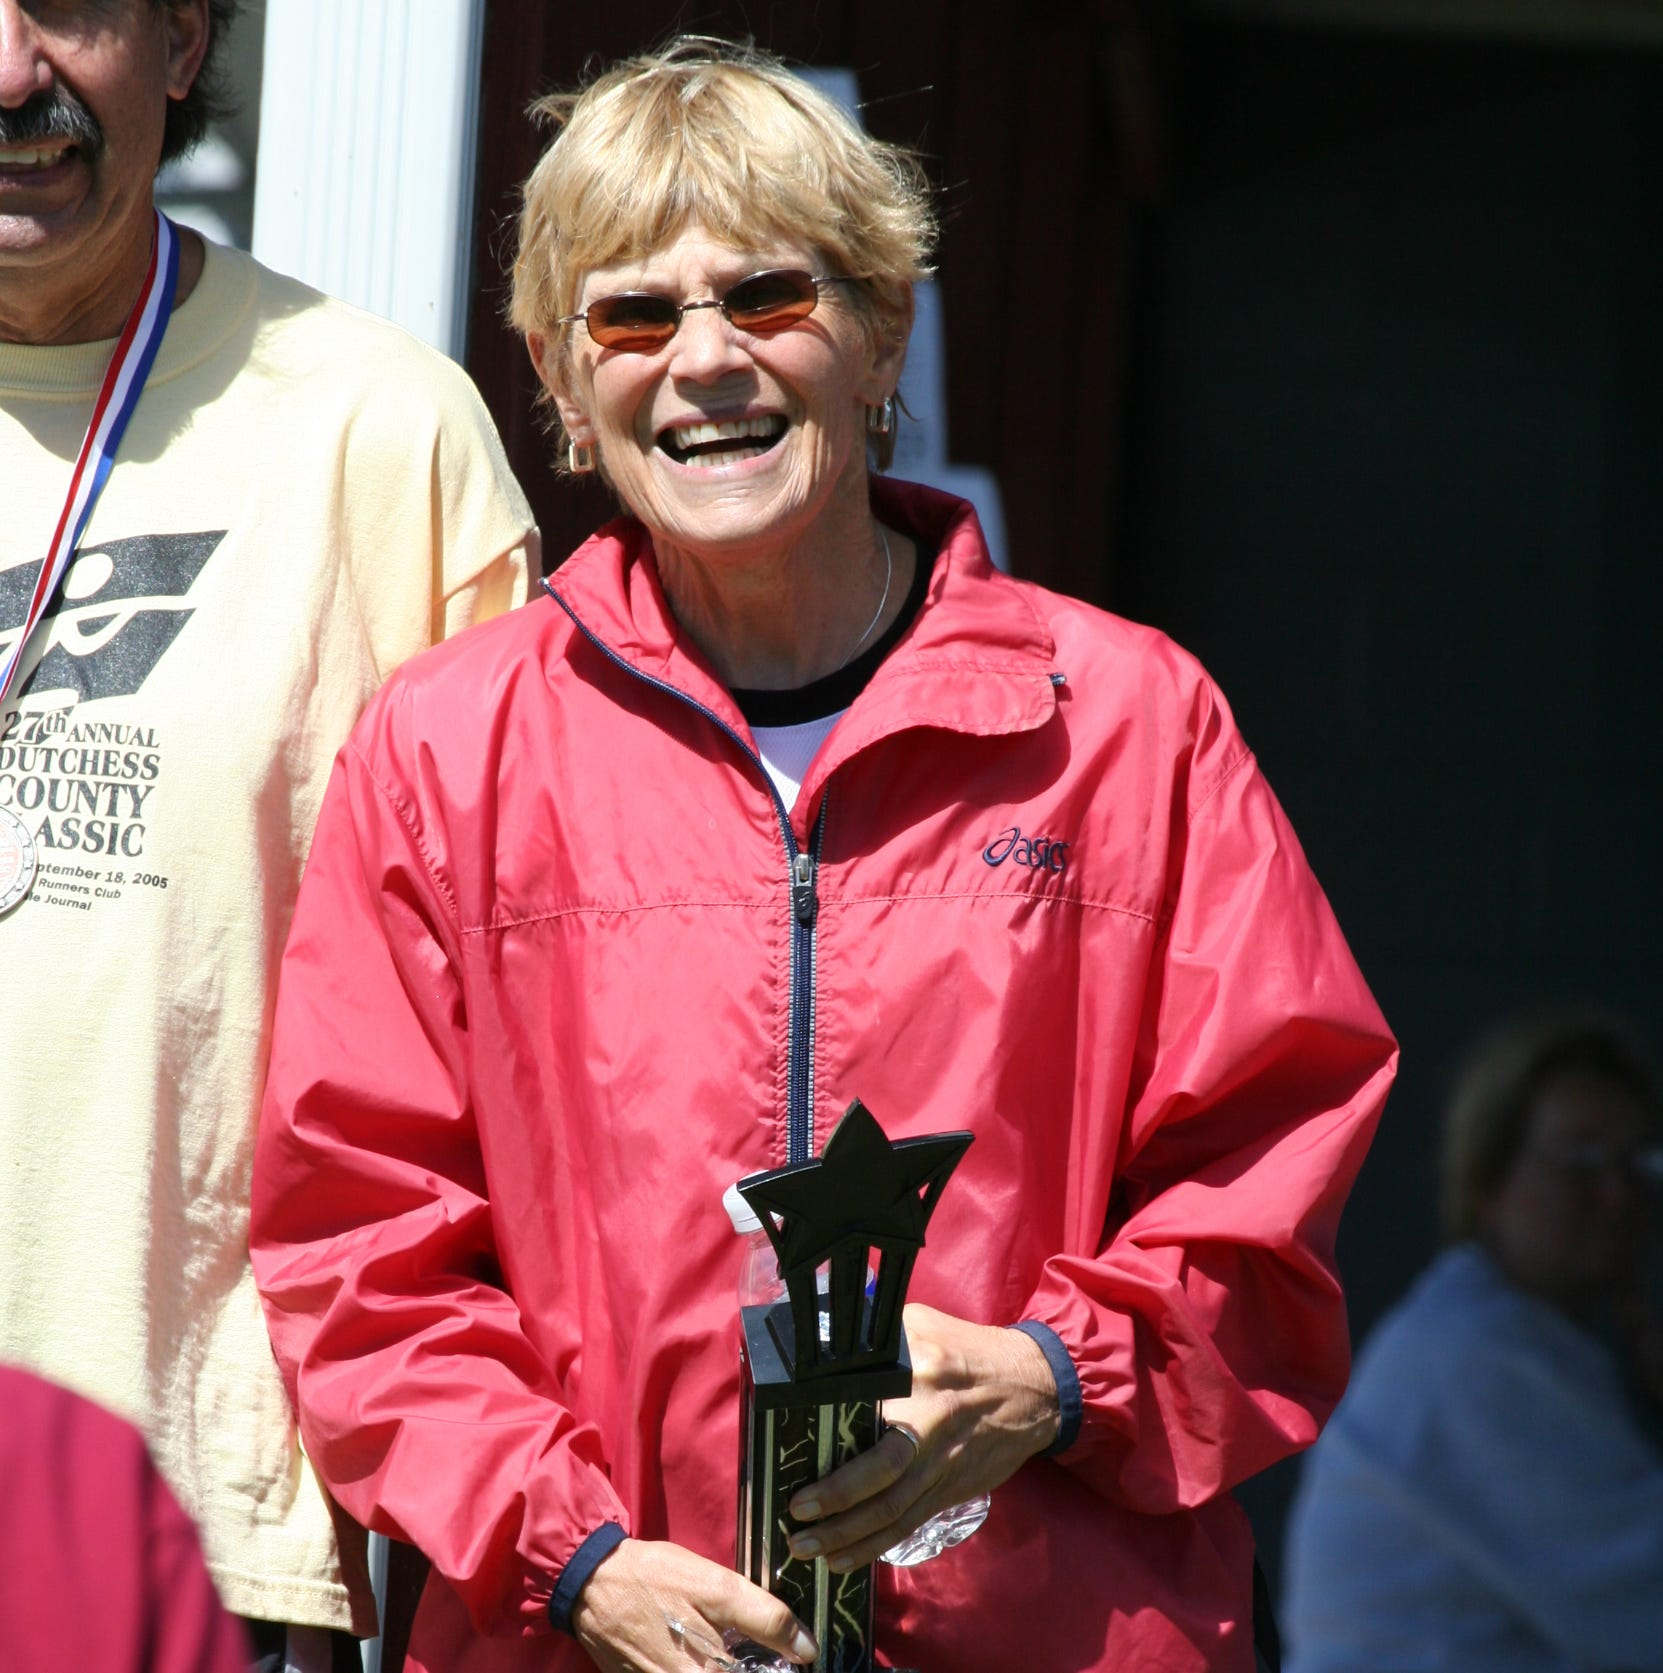 Mary Phillips blazed a trail for women's runners, supported all